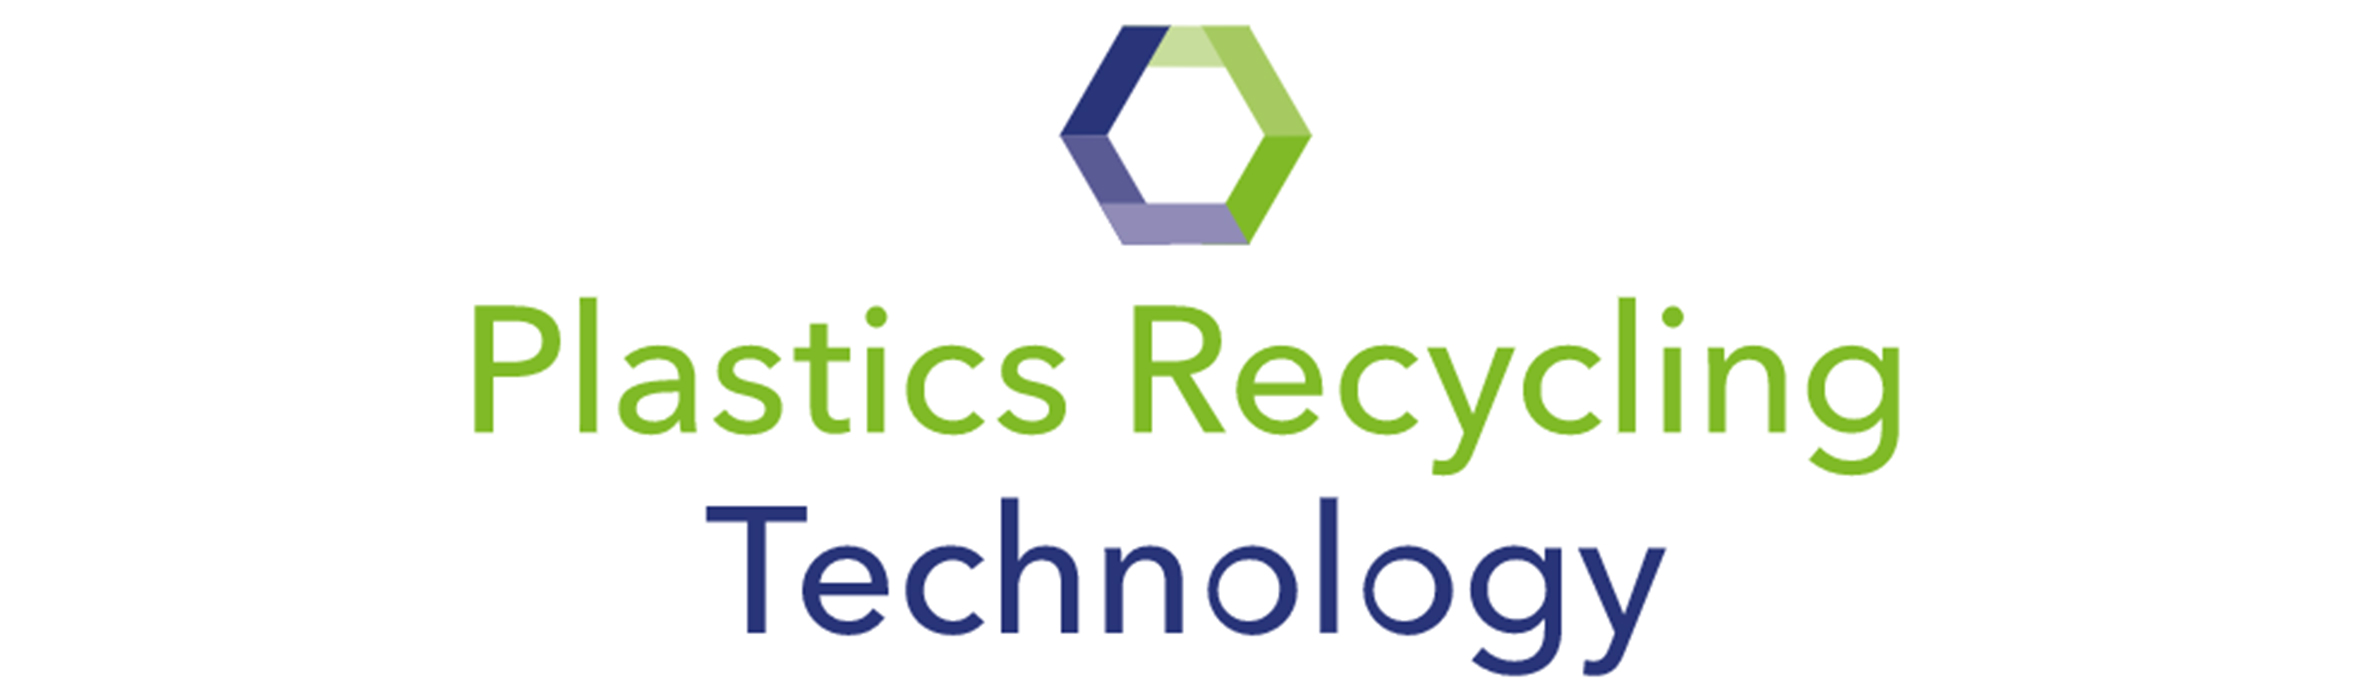 PLASTICS RECYCLING TECHNOLOGY - VIENNA (AUSTRIA)